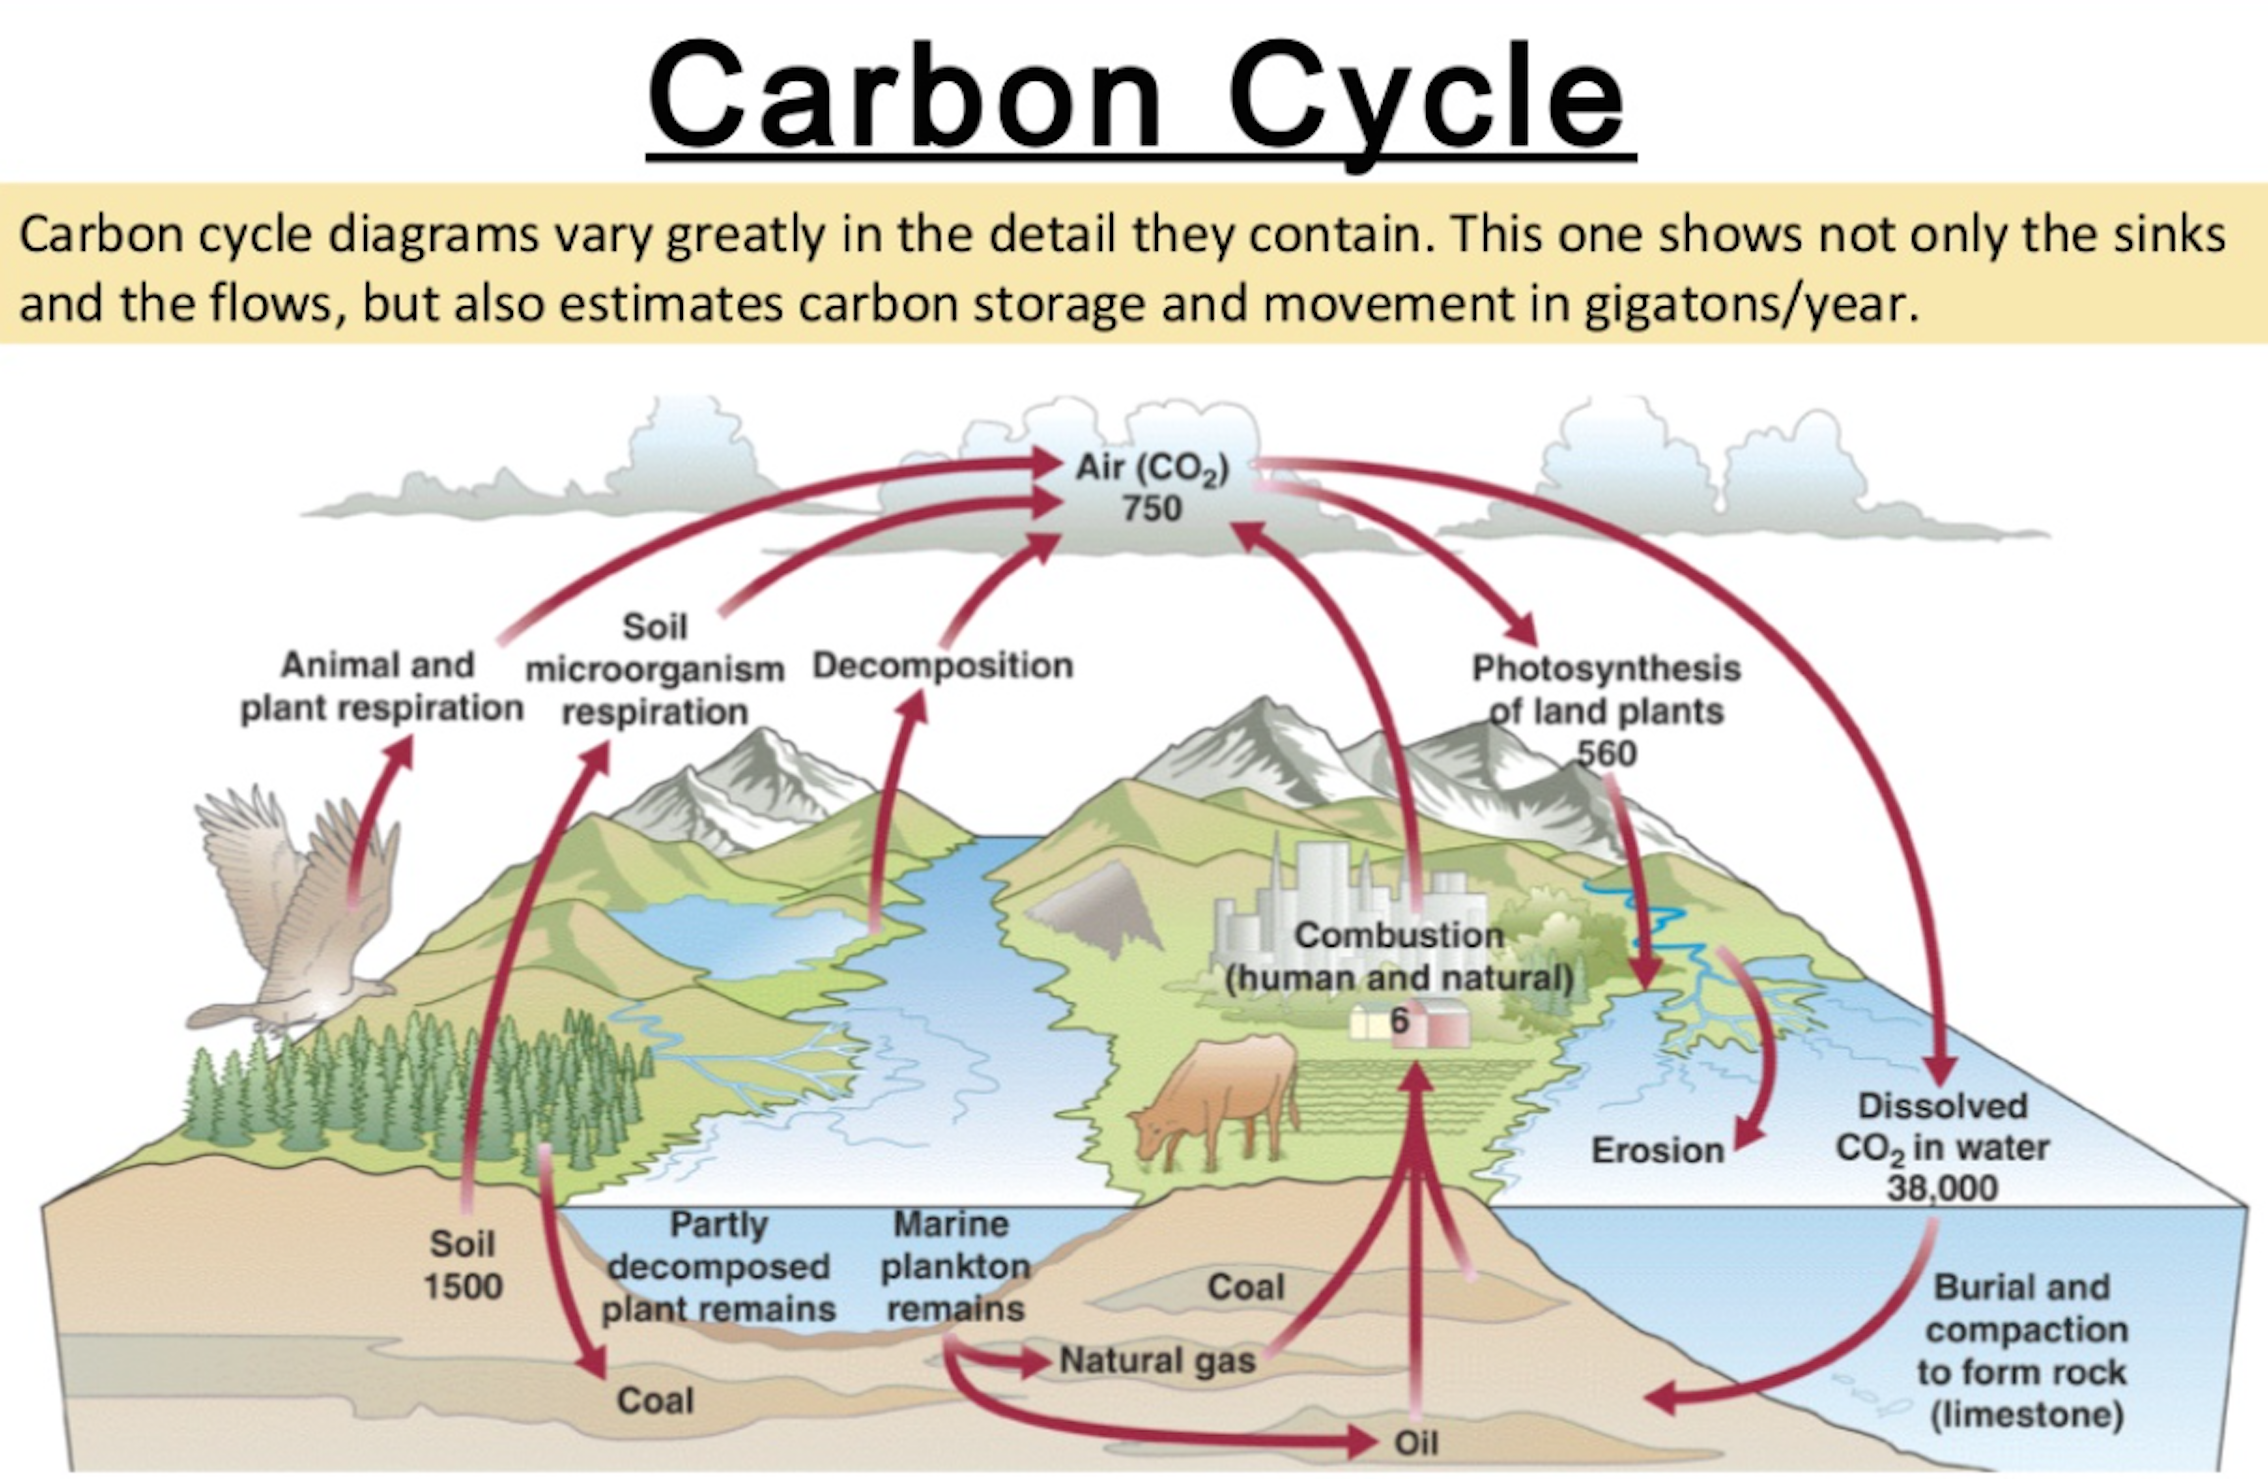 Mr horrocks biology 43 carbon cycling screen shot 2016 09 01 at 65757 am instructions after studying the carbon cycle above in ccuart